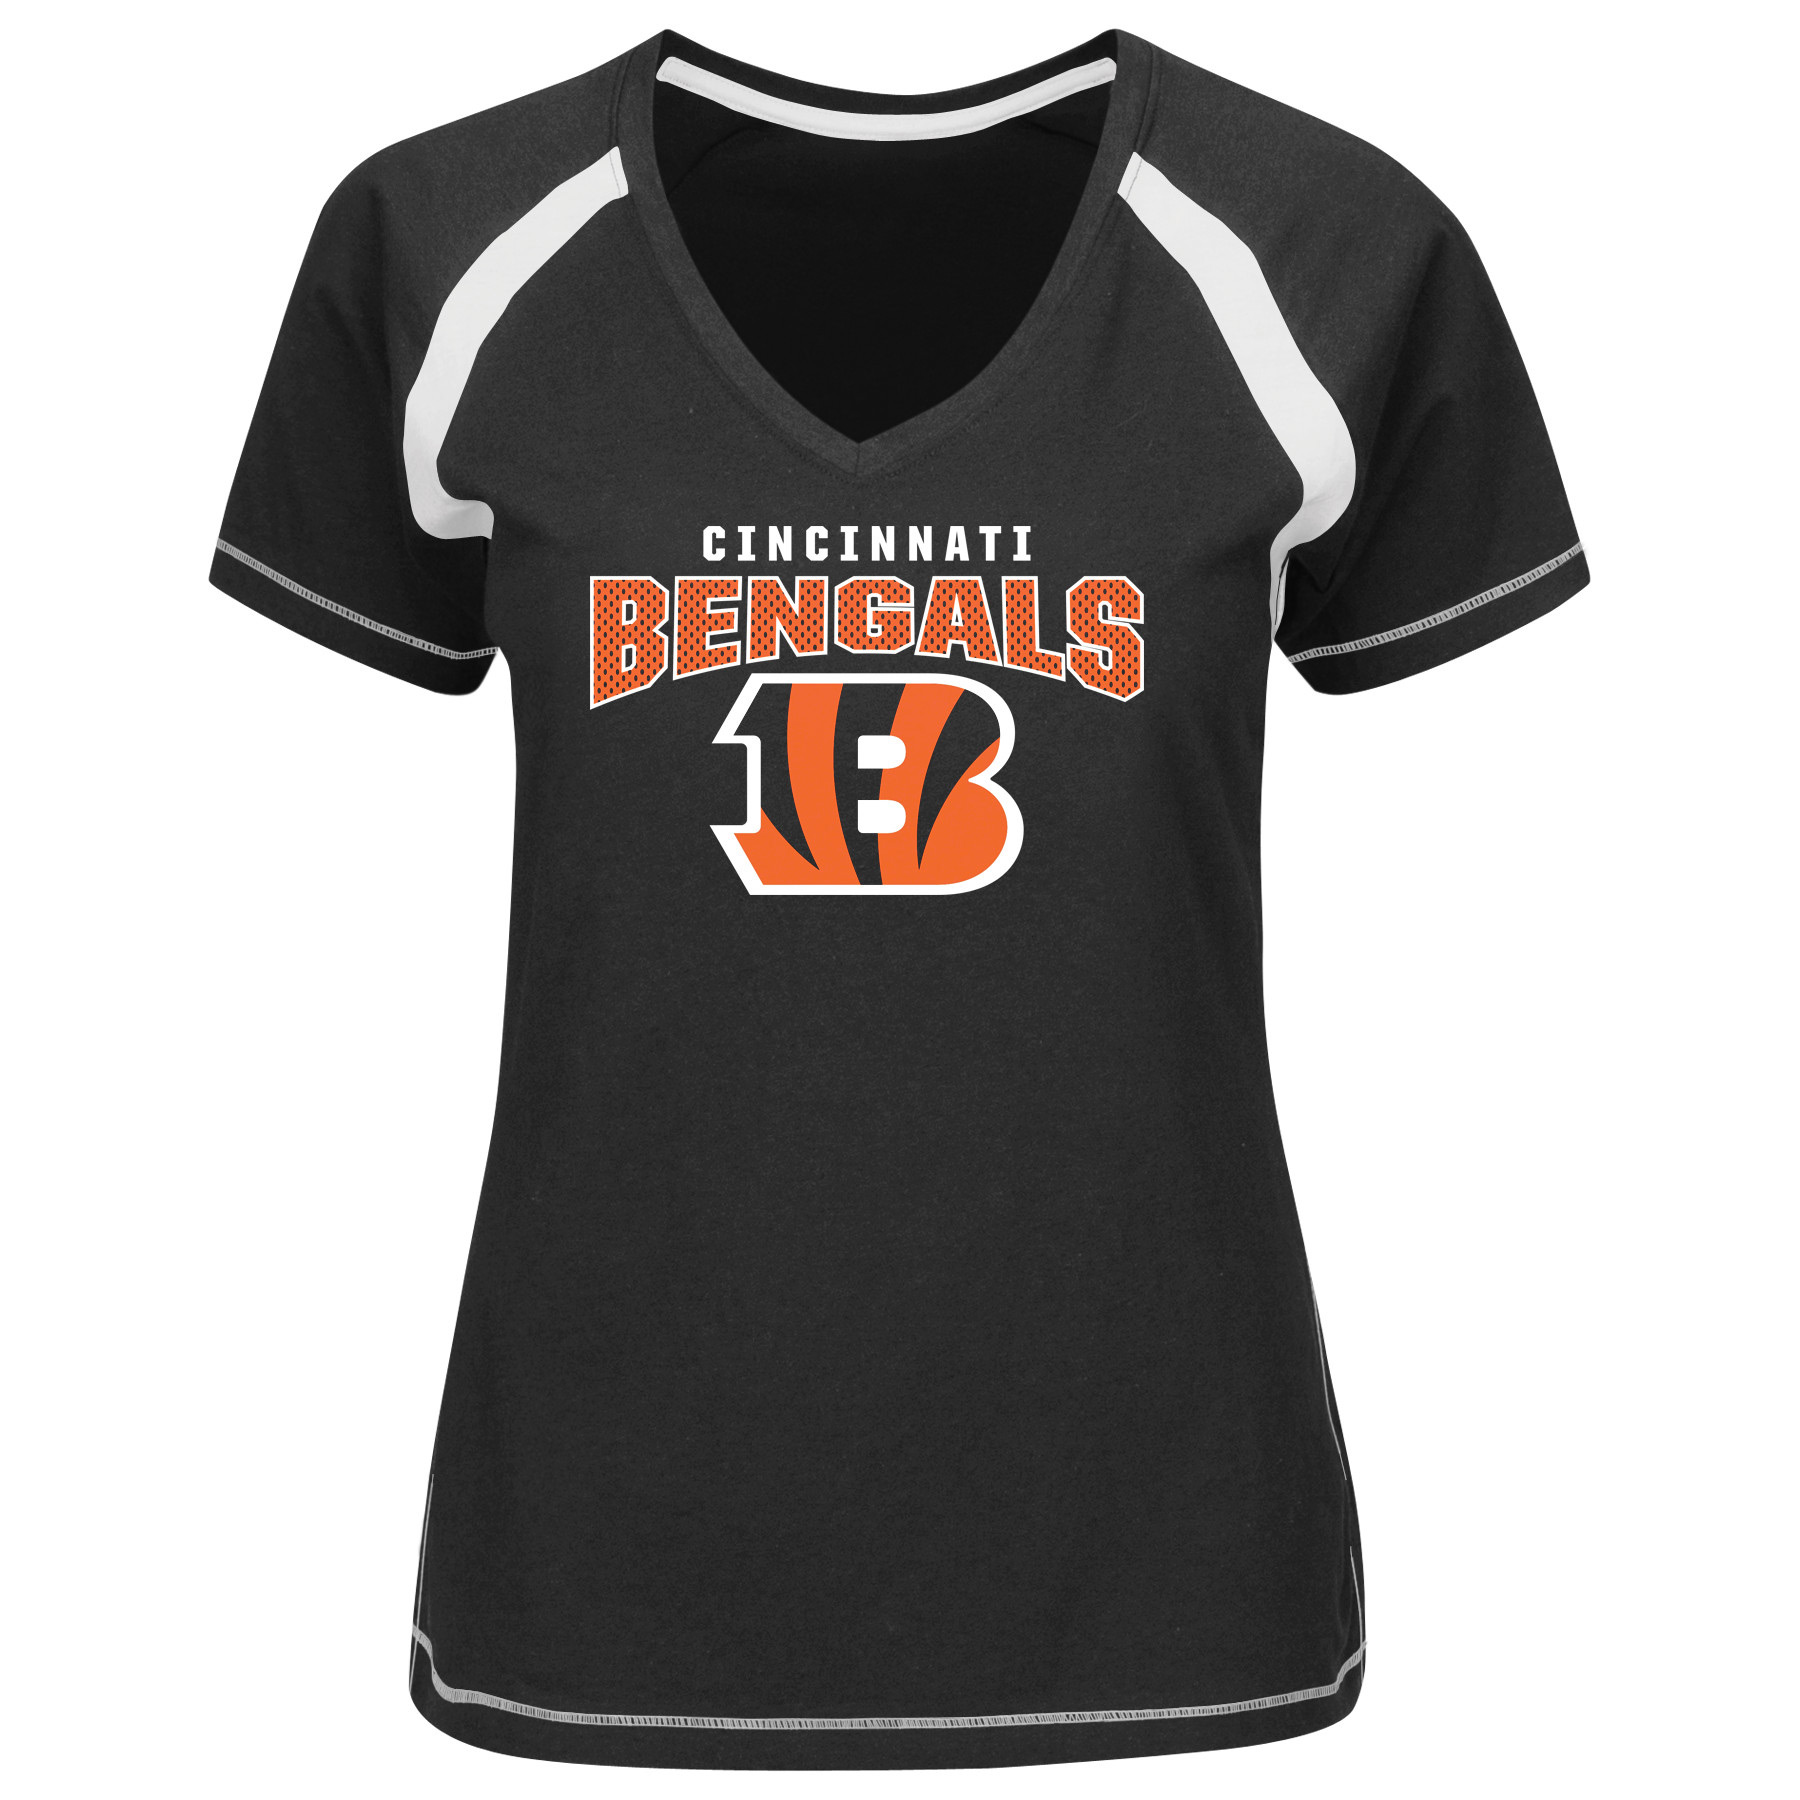 Cincinnati Bengals Majestic Women's Game Day Tradition V-Neck T-Shirt - Black